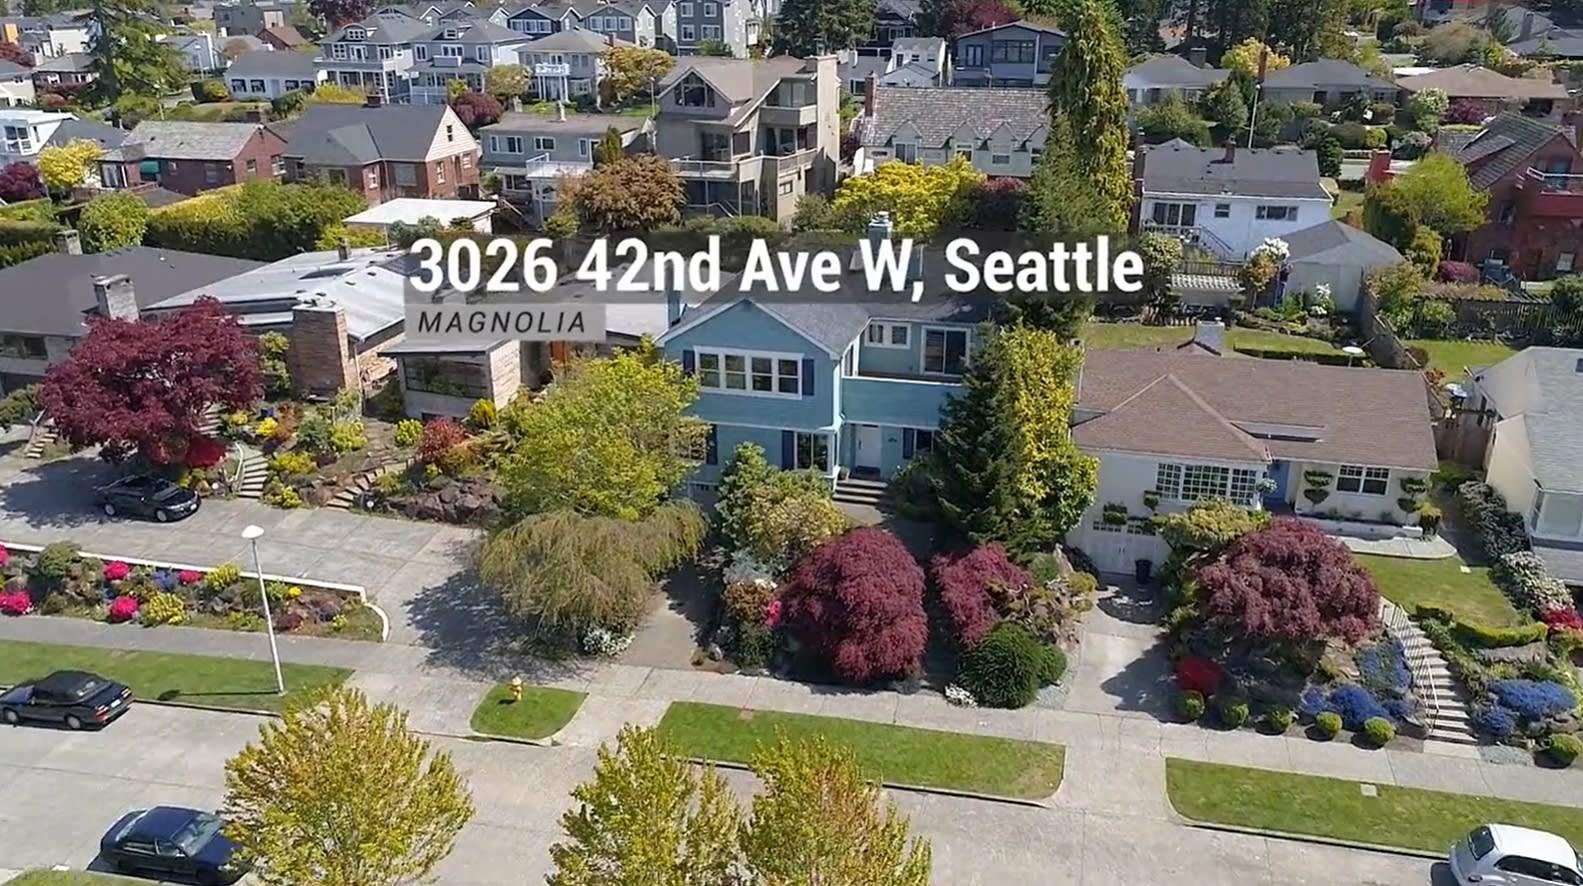 3026 42nd Ave W, Seattle | Magnolia video preview